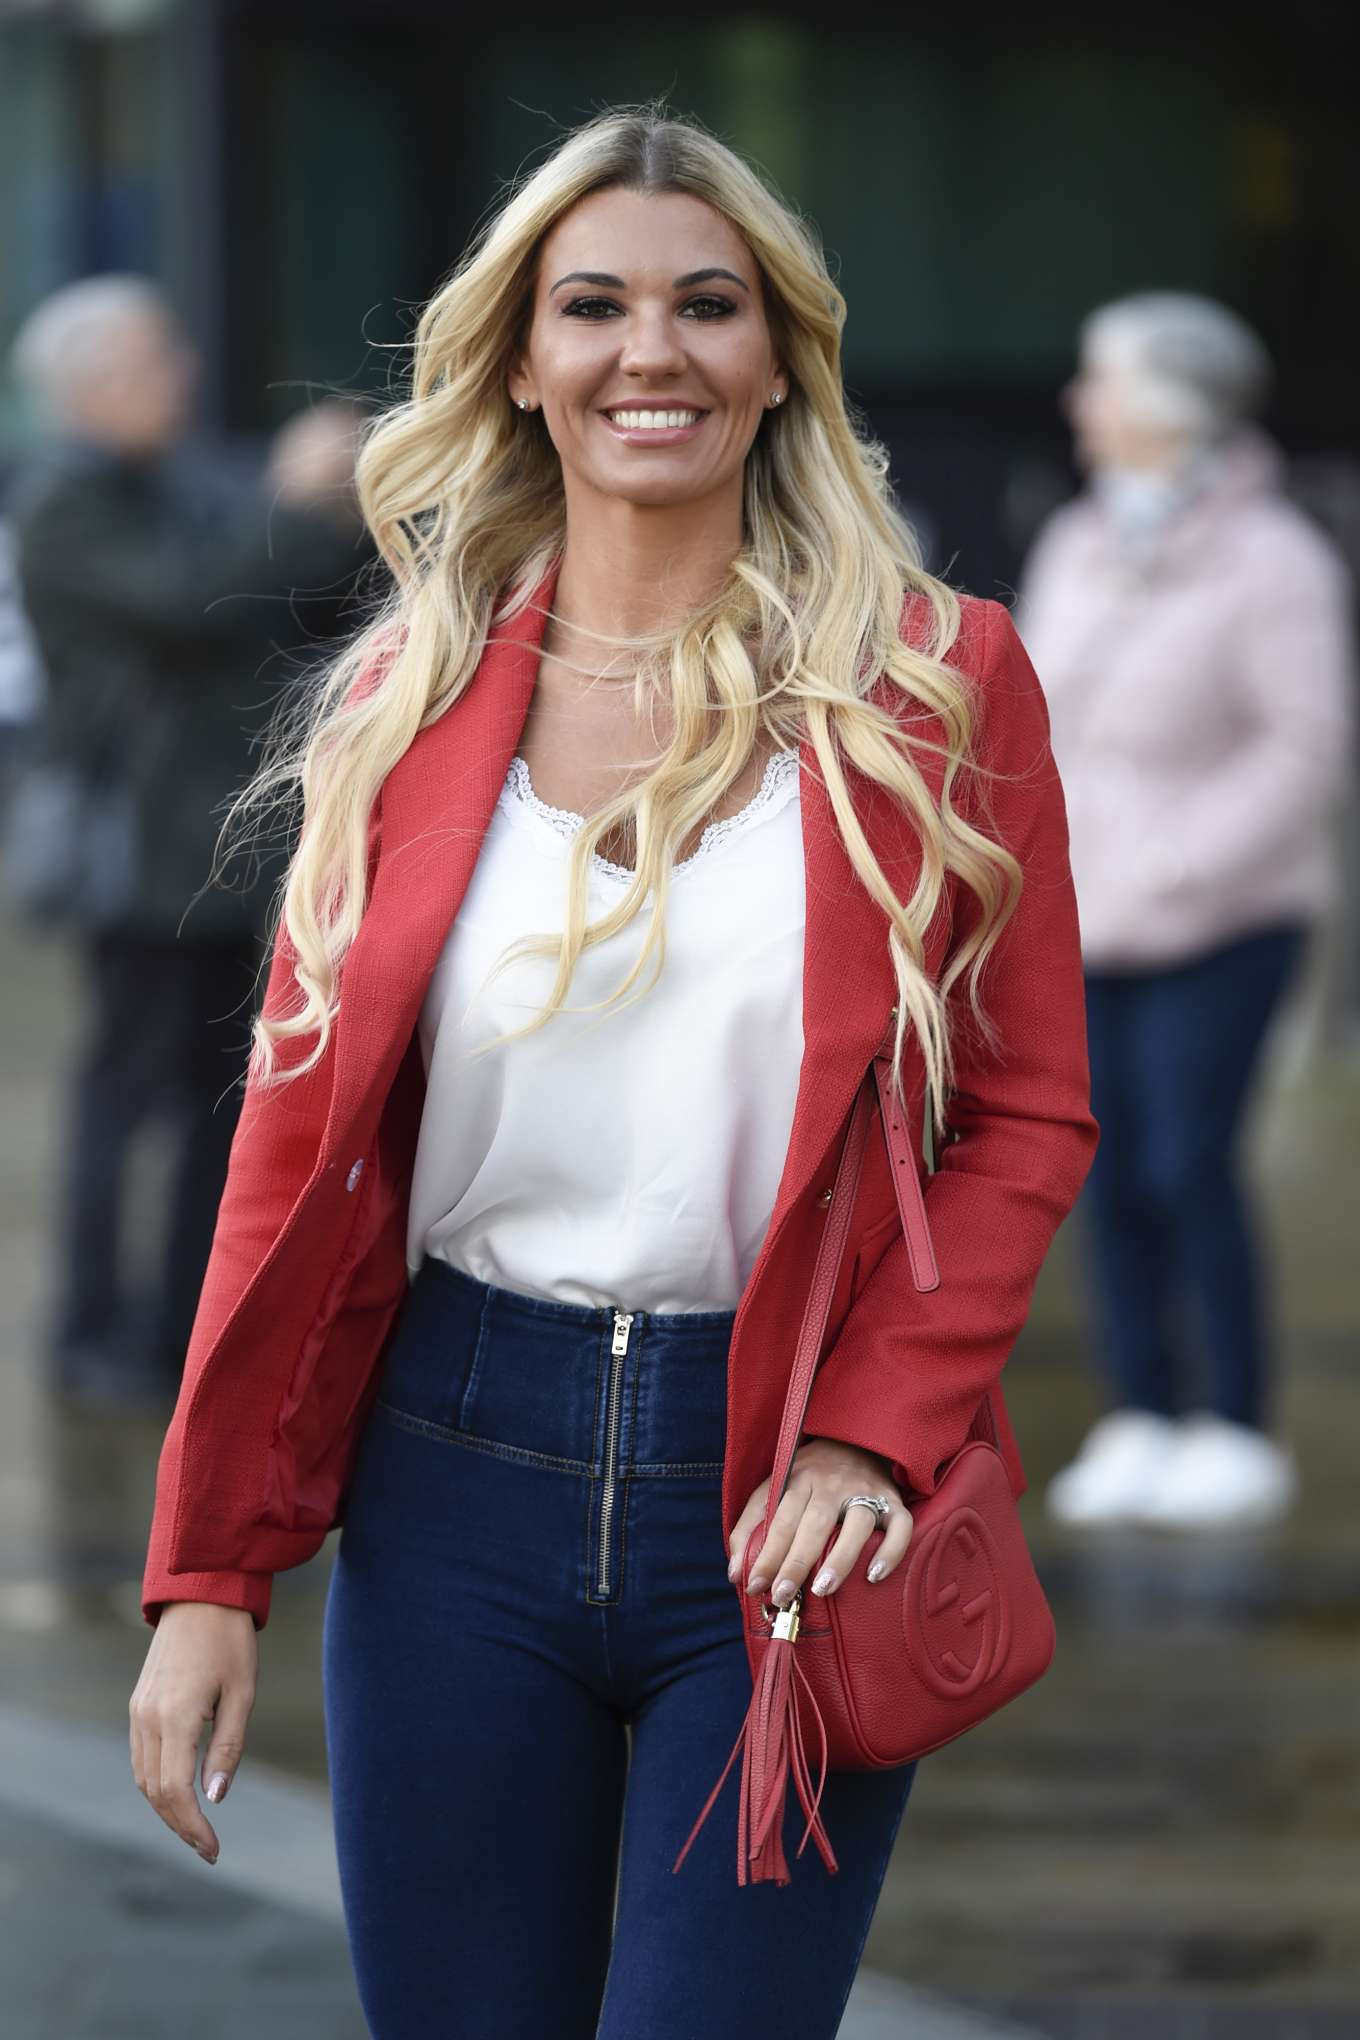 Christine McGuinness - Leaving Radio 5 Live in Manchester